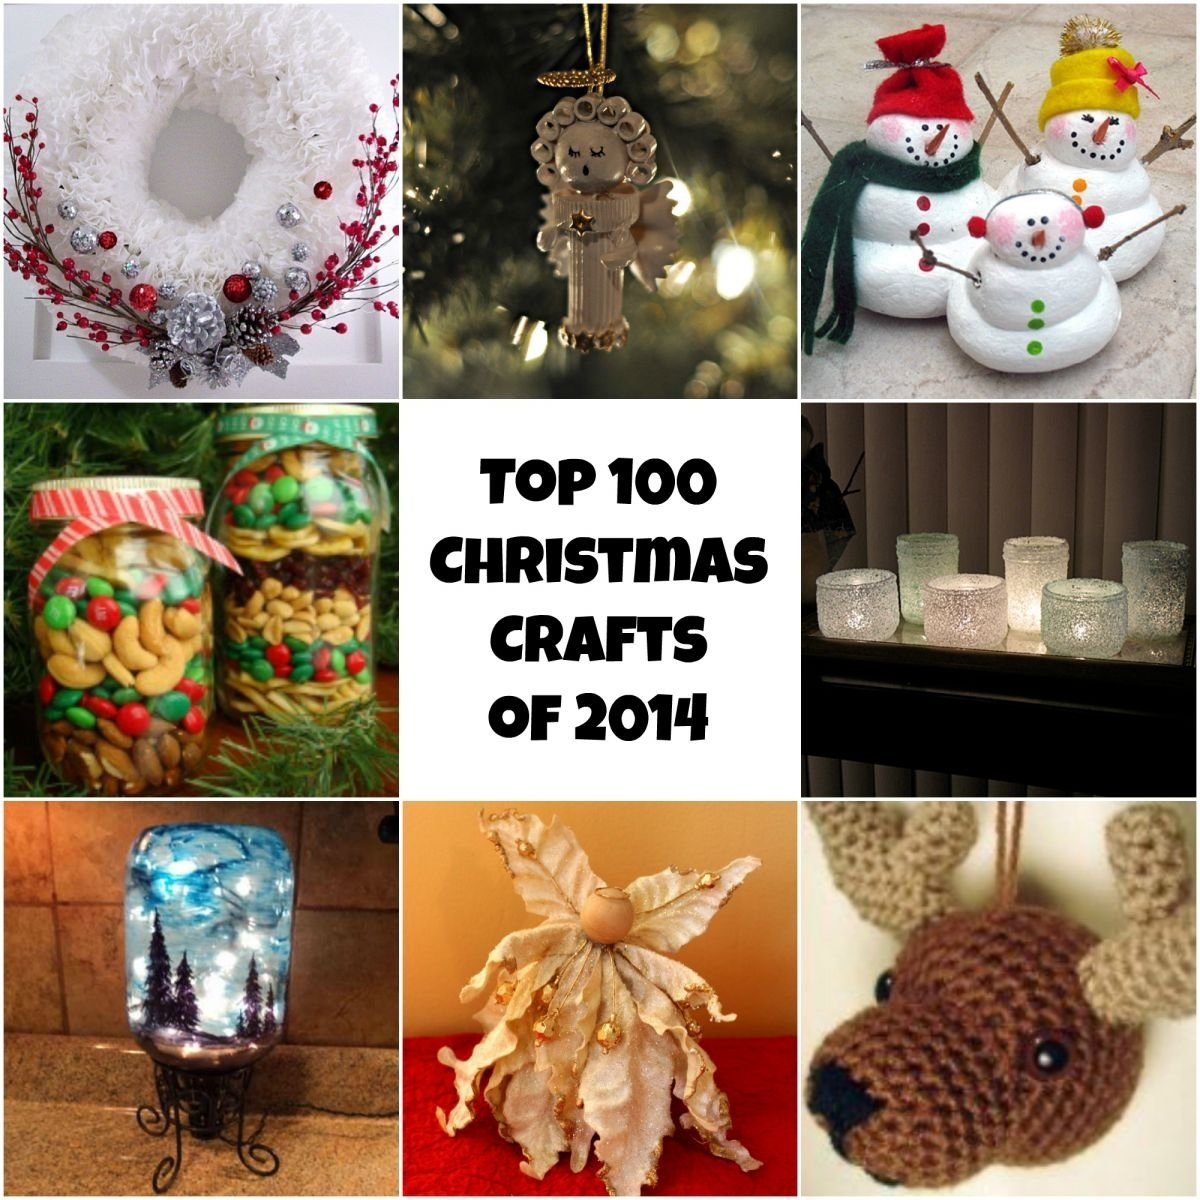 top 100 diy christmas crafts of 2014: homemade christmas ornaments